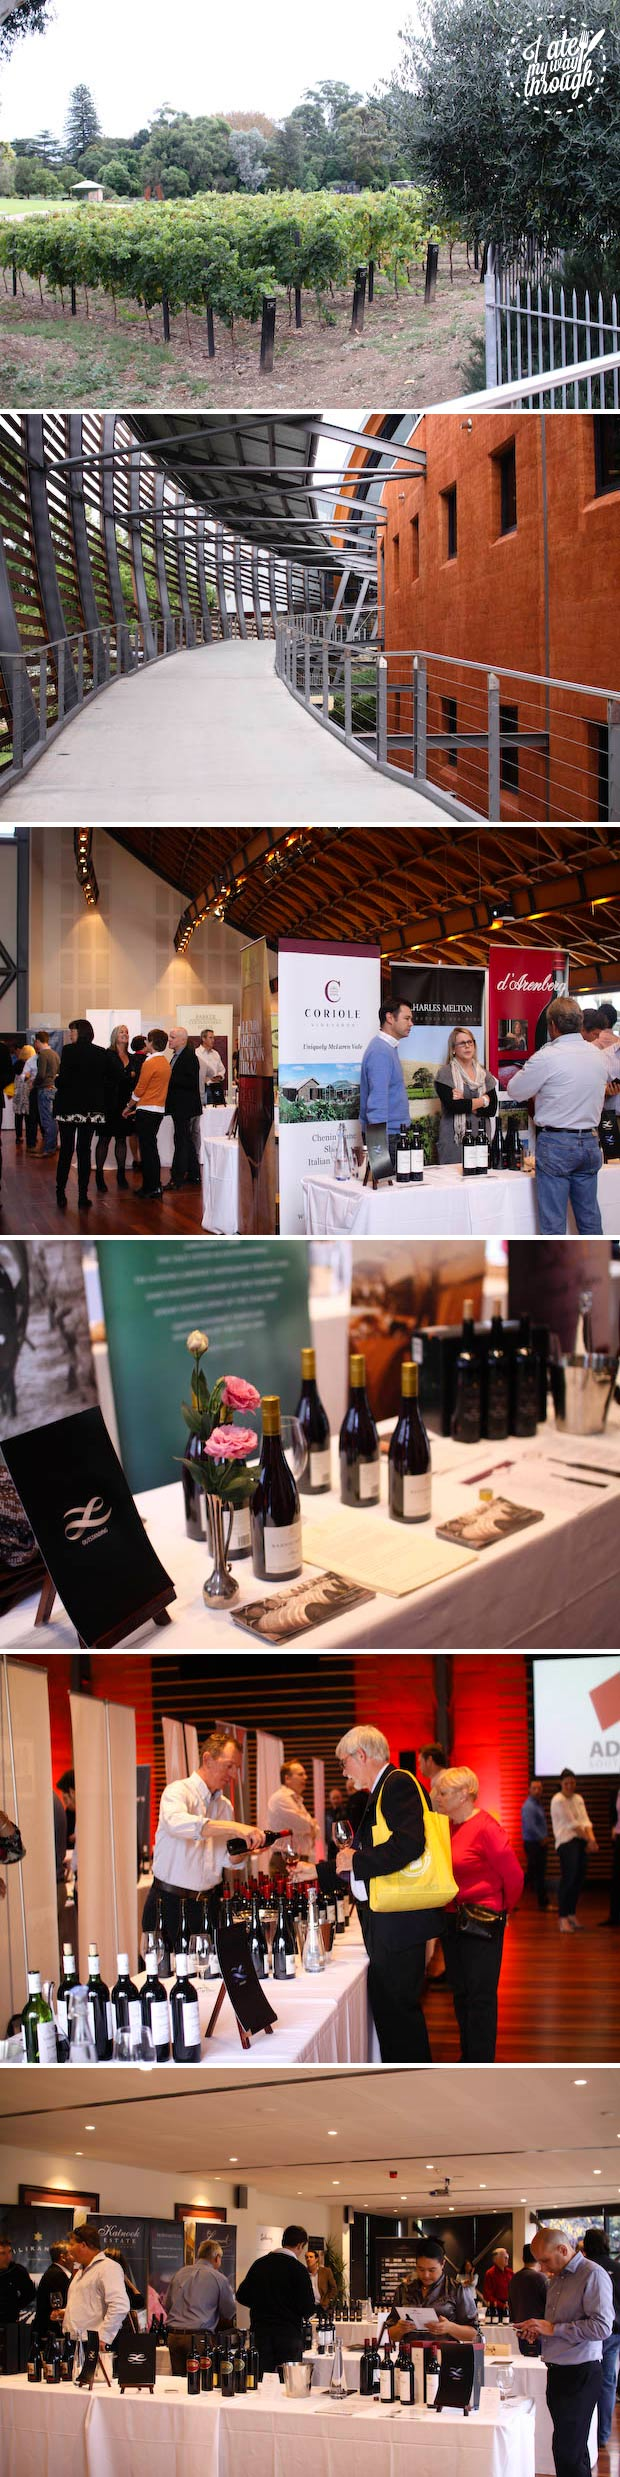 Langton's classification of Australian wine VI tasting event at Tasting Australia 2014